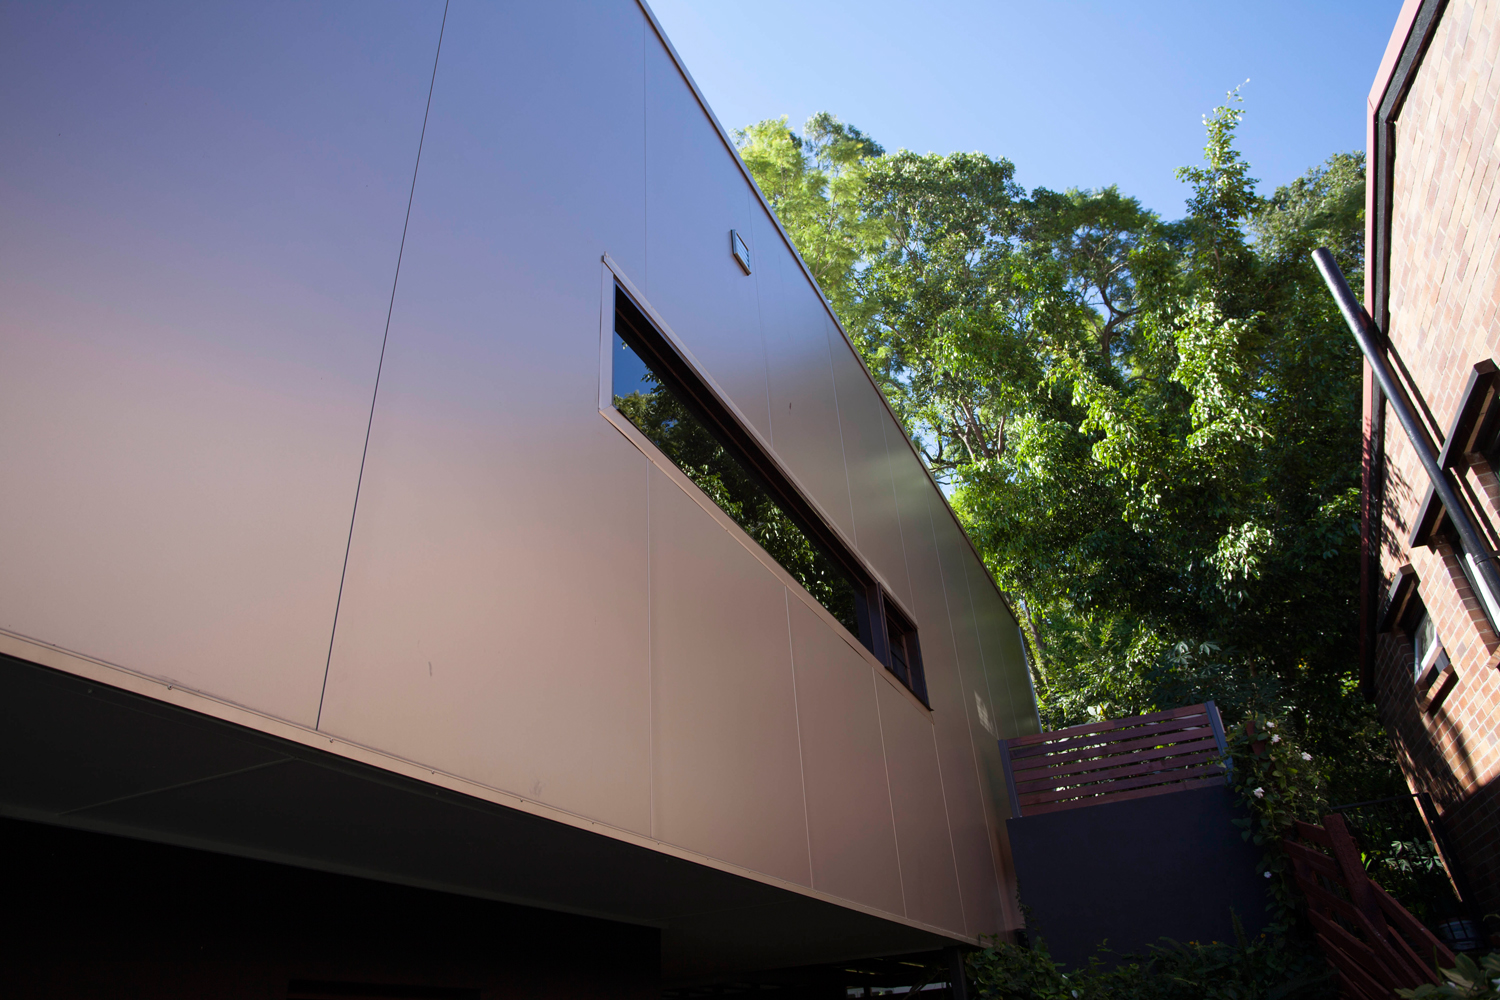 New, innovative and disruptive building technology